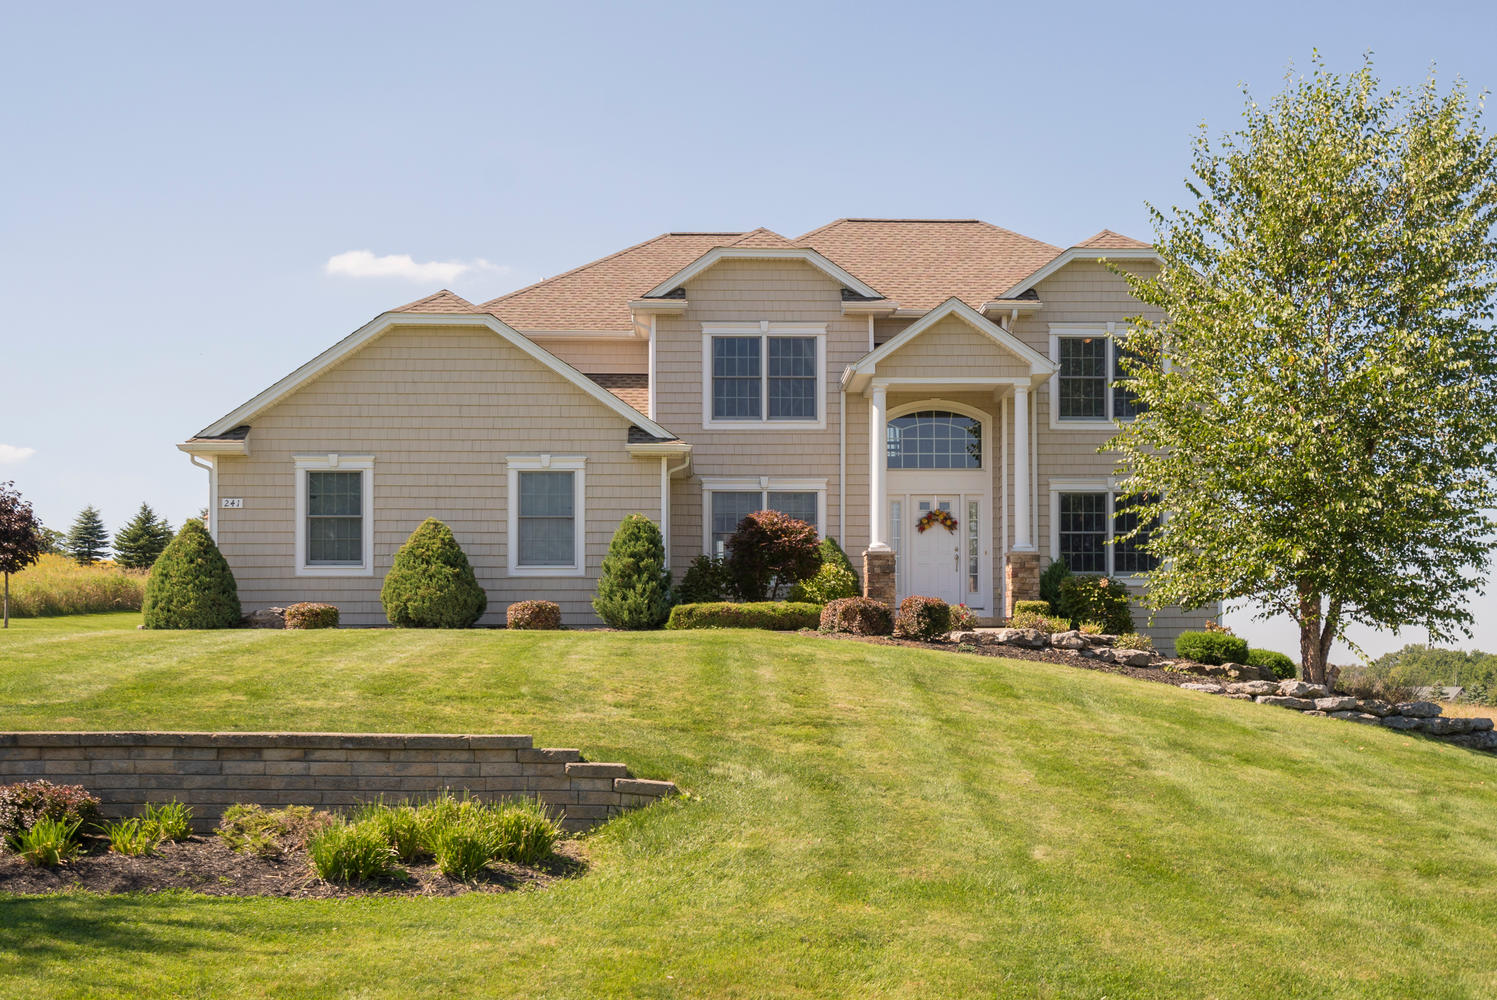 241 Reiter Rd East Aurora NY-large-001-26-Exterior  Front-1498x1000-72dpi